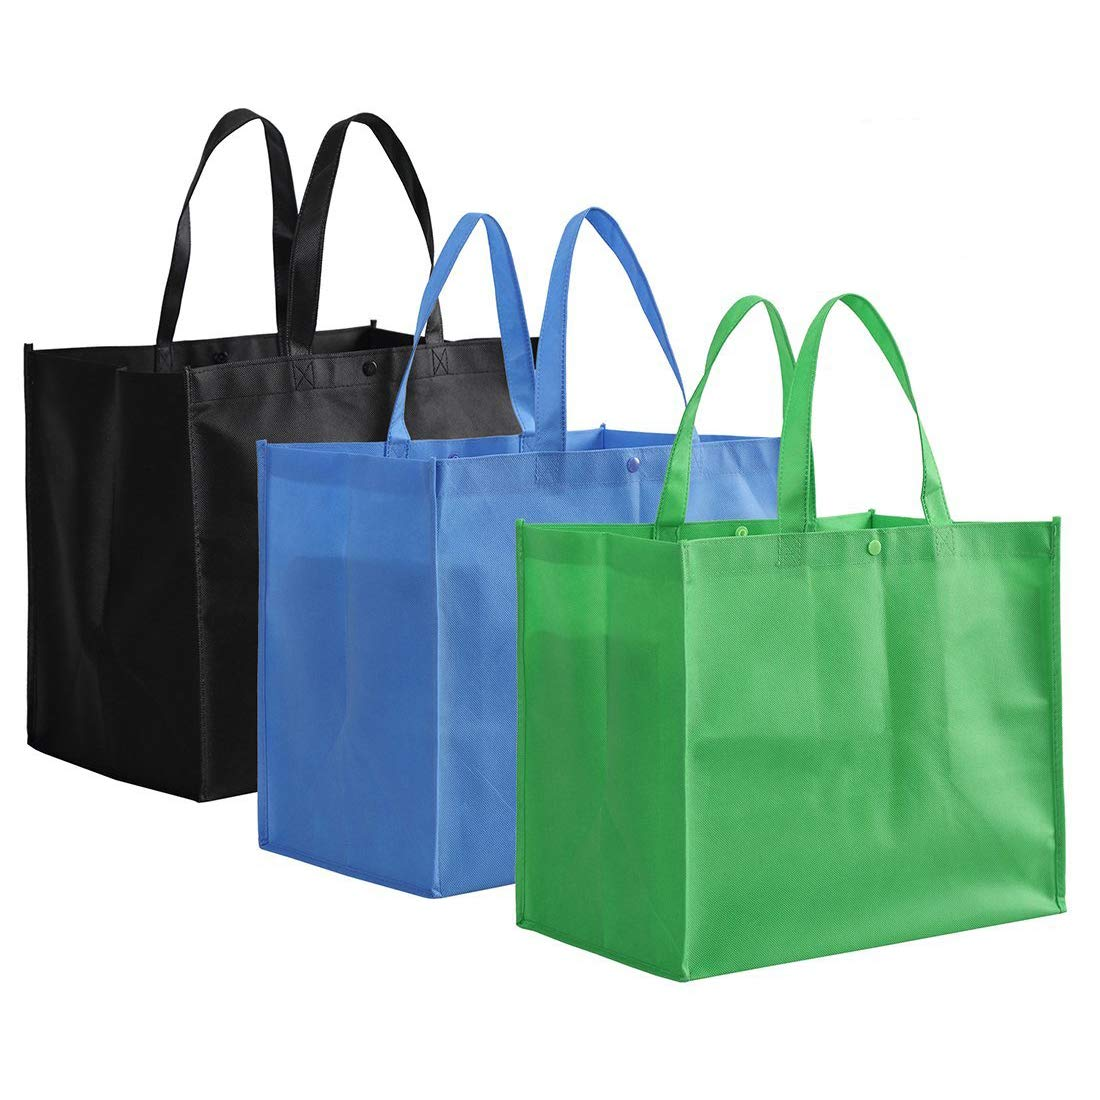 Tosnail Large Reusable Handle Grocery Tote Bag Shopping Bags - 12 Pack in 3 Colors by Tosnail